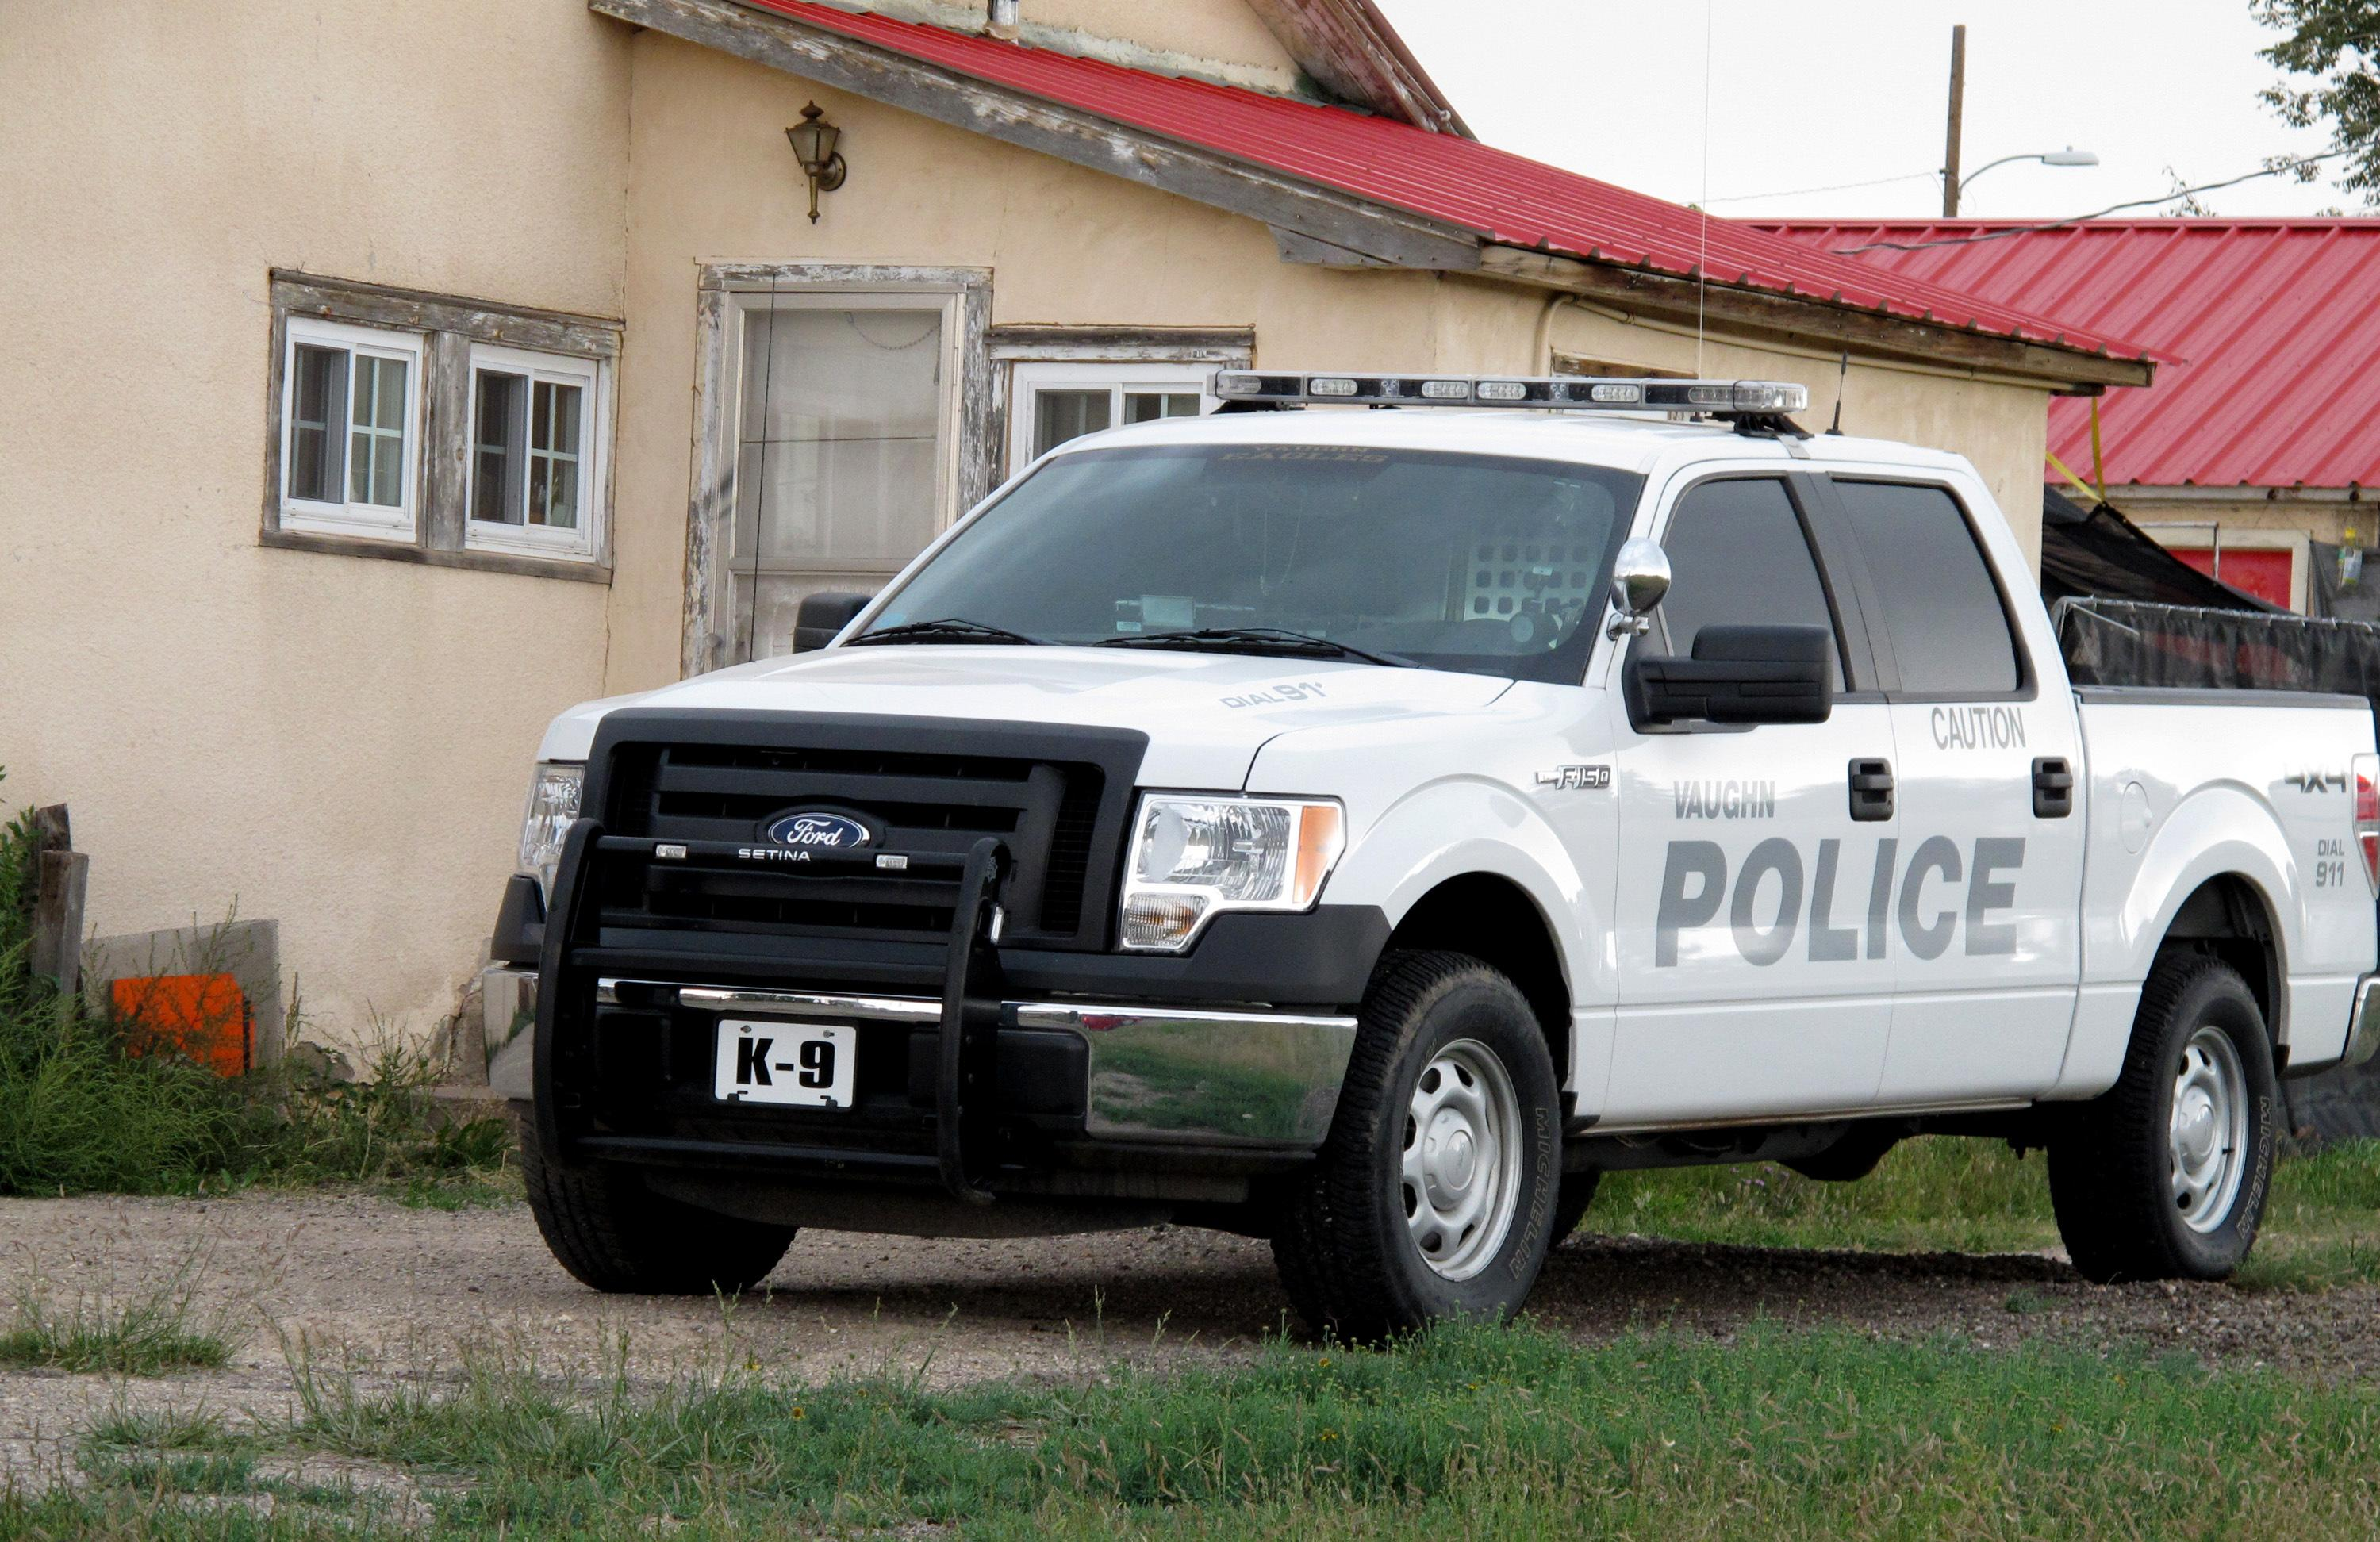 """The """"K-9"""" police truck of the Vaughn, N.M. Police Department is shown in driveway of former Vaughn Police Chief Ernest """"Chris"""" Armijo Wednesday, Sept. 26, 2012 photo. Vaughn officials announced Wednesday that Armijo resigned after news stories reported that he was not allowed to carry a gun due to his criminal record, leaving the town with just one certified member on its police- force a drug-sniffing dog named Nikka. The town's only other officer isn't certified and pleaded guilty to charges of assault and battery last year. (AP Photo/Russell Contreras)"""